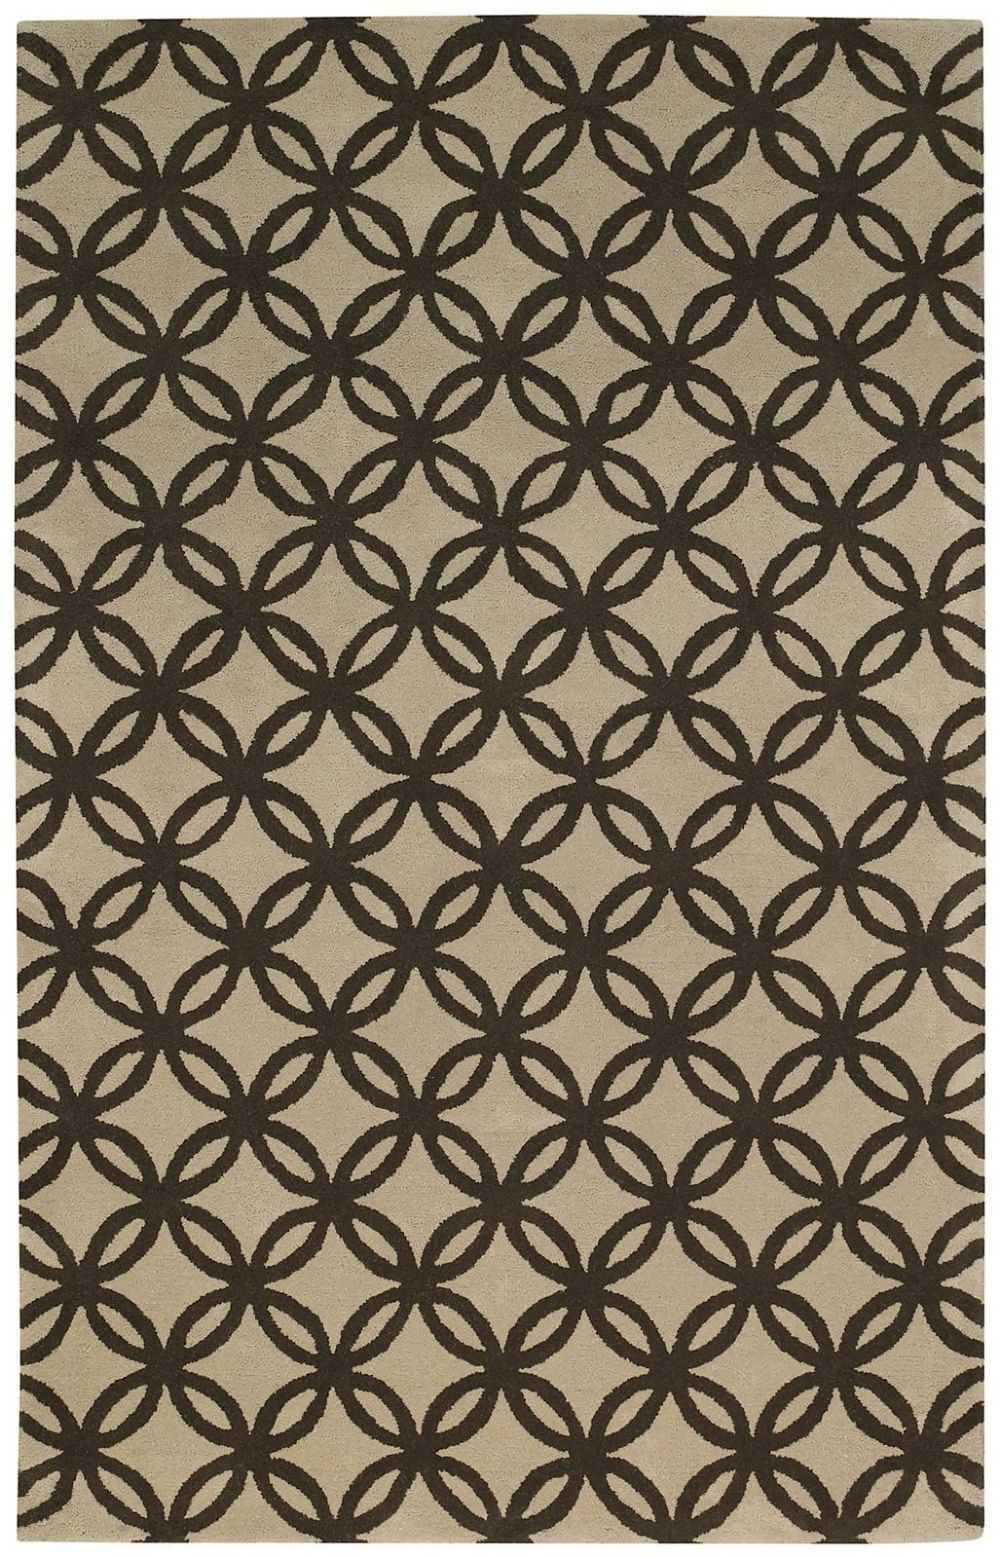 capel derry-optic contemporary area rug collection